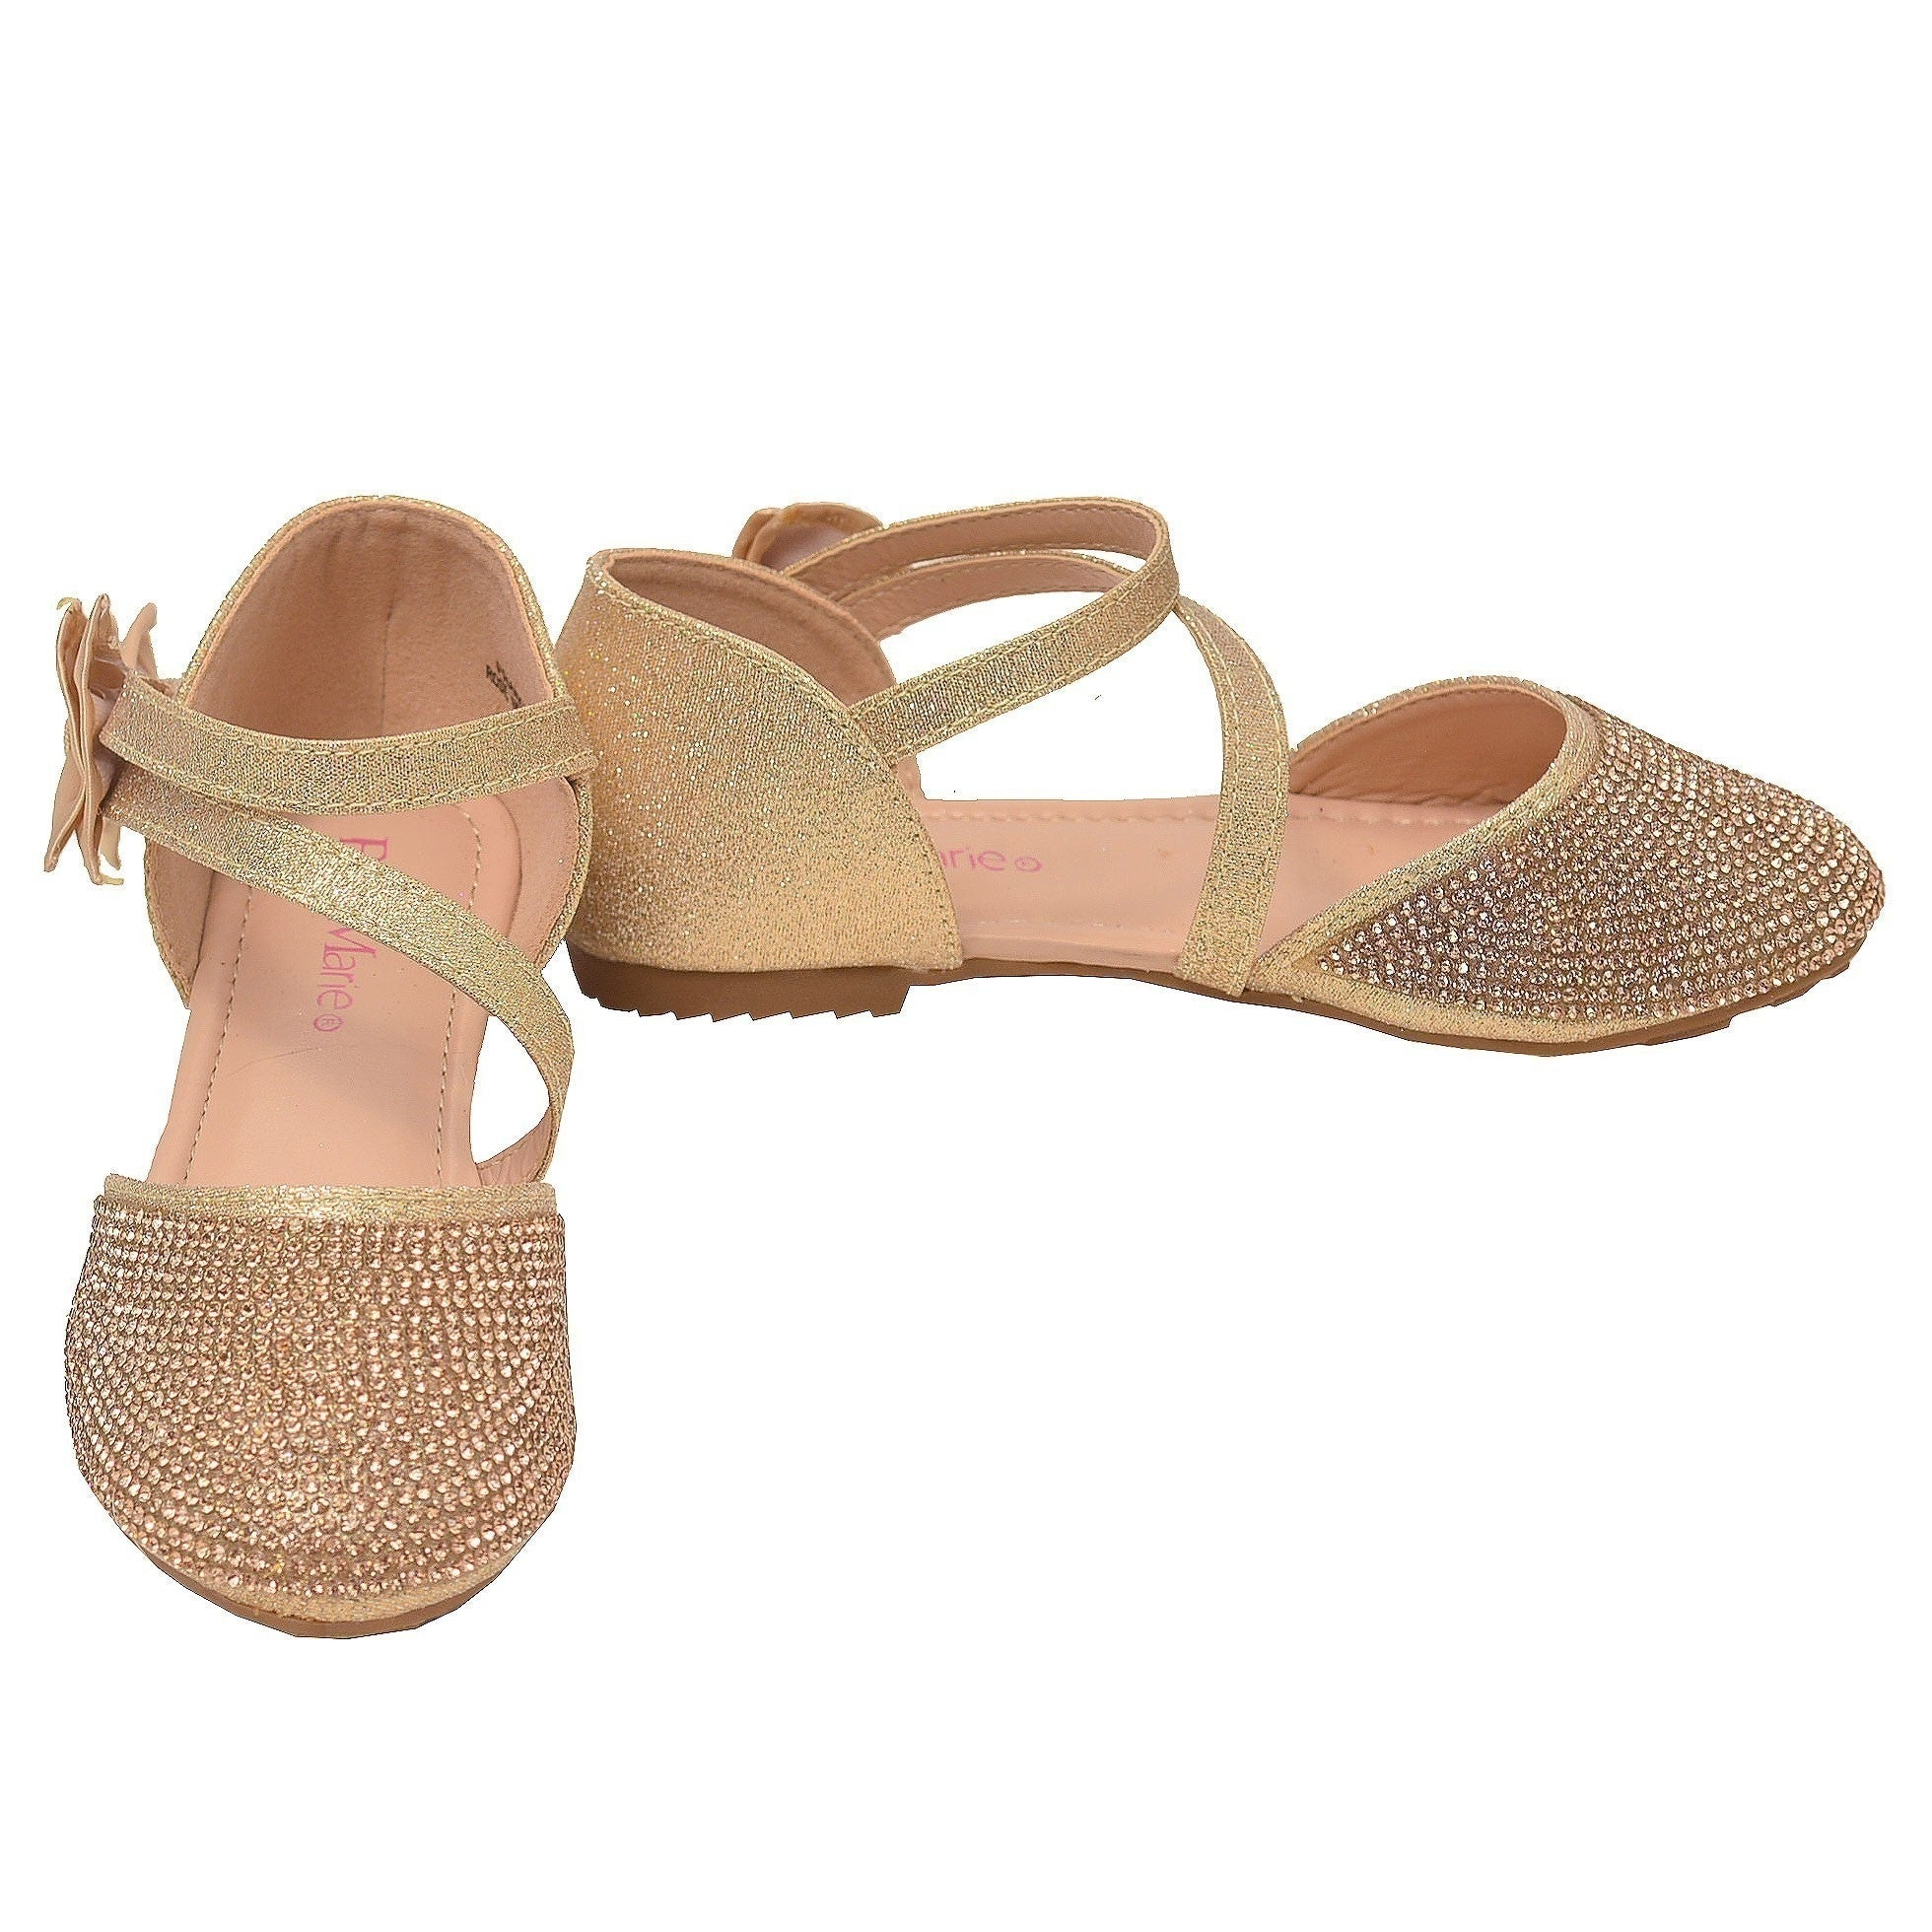 9027e2cb1e47 Shop Bella Marie Girls Rose Gold Glitter Diagonal Ankle Strap Flats - Free  Shipping On Orders Over  45 - Overstock - 25600255